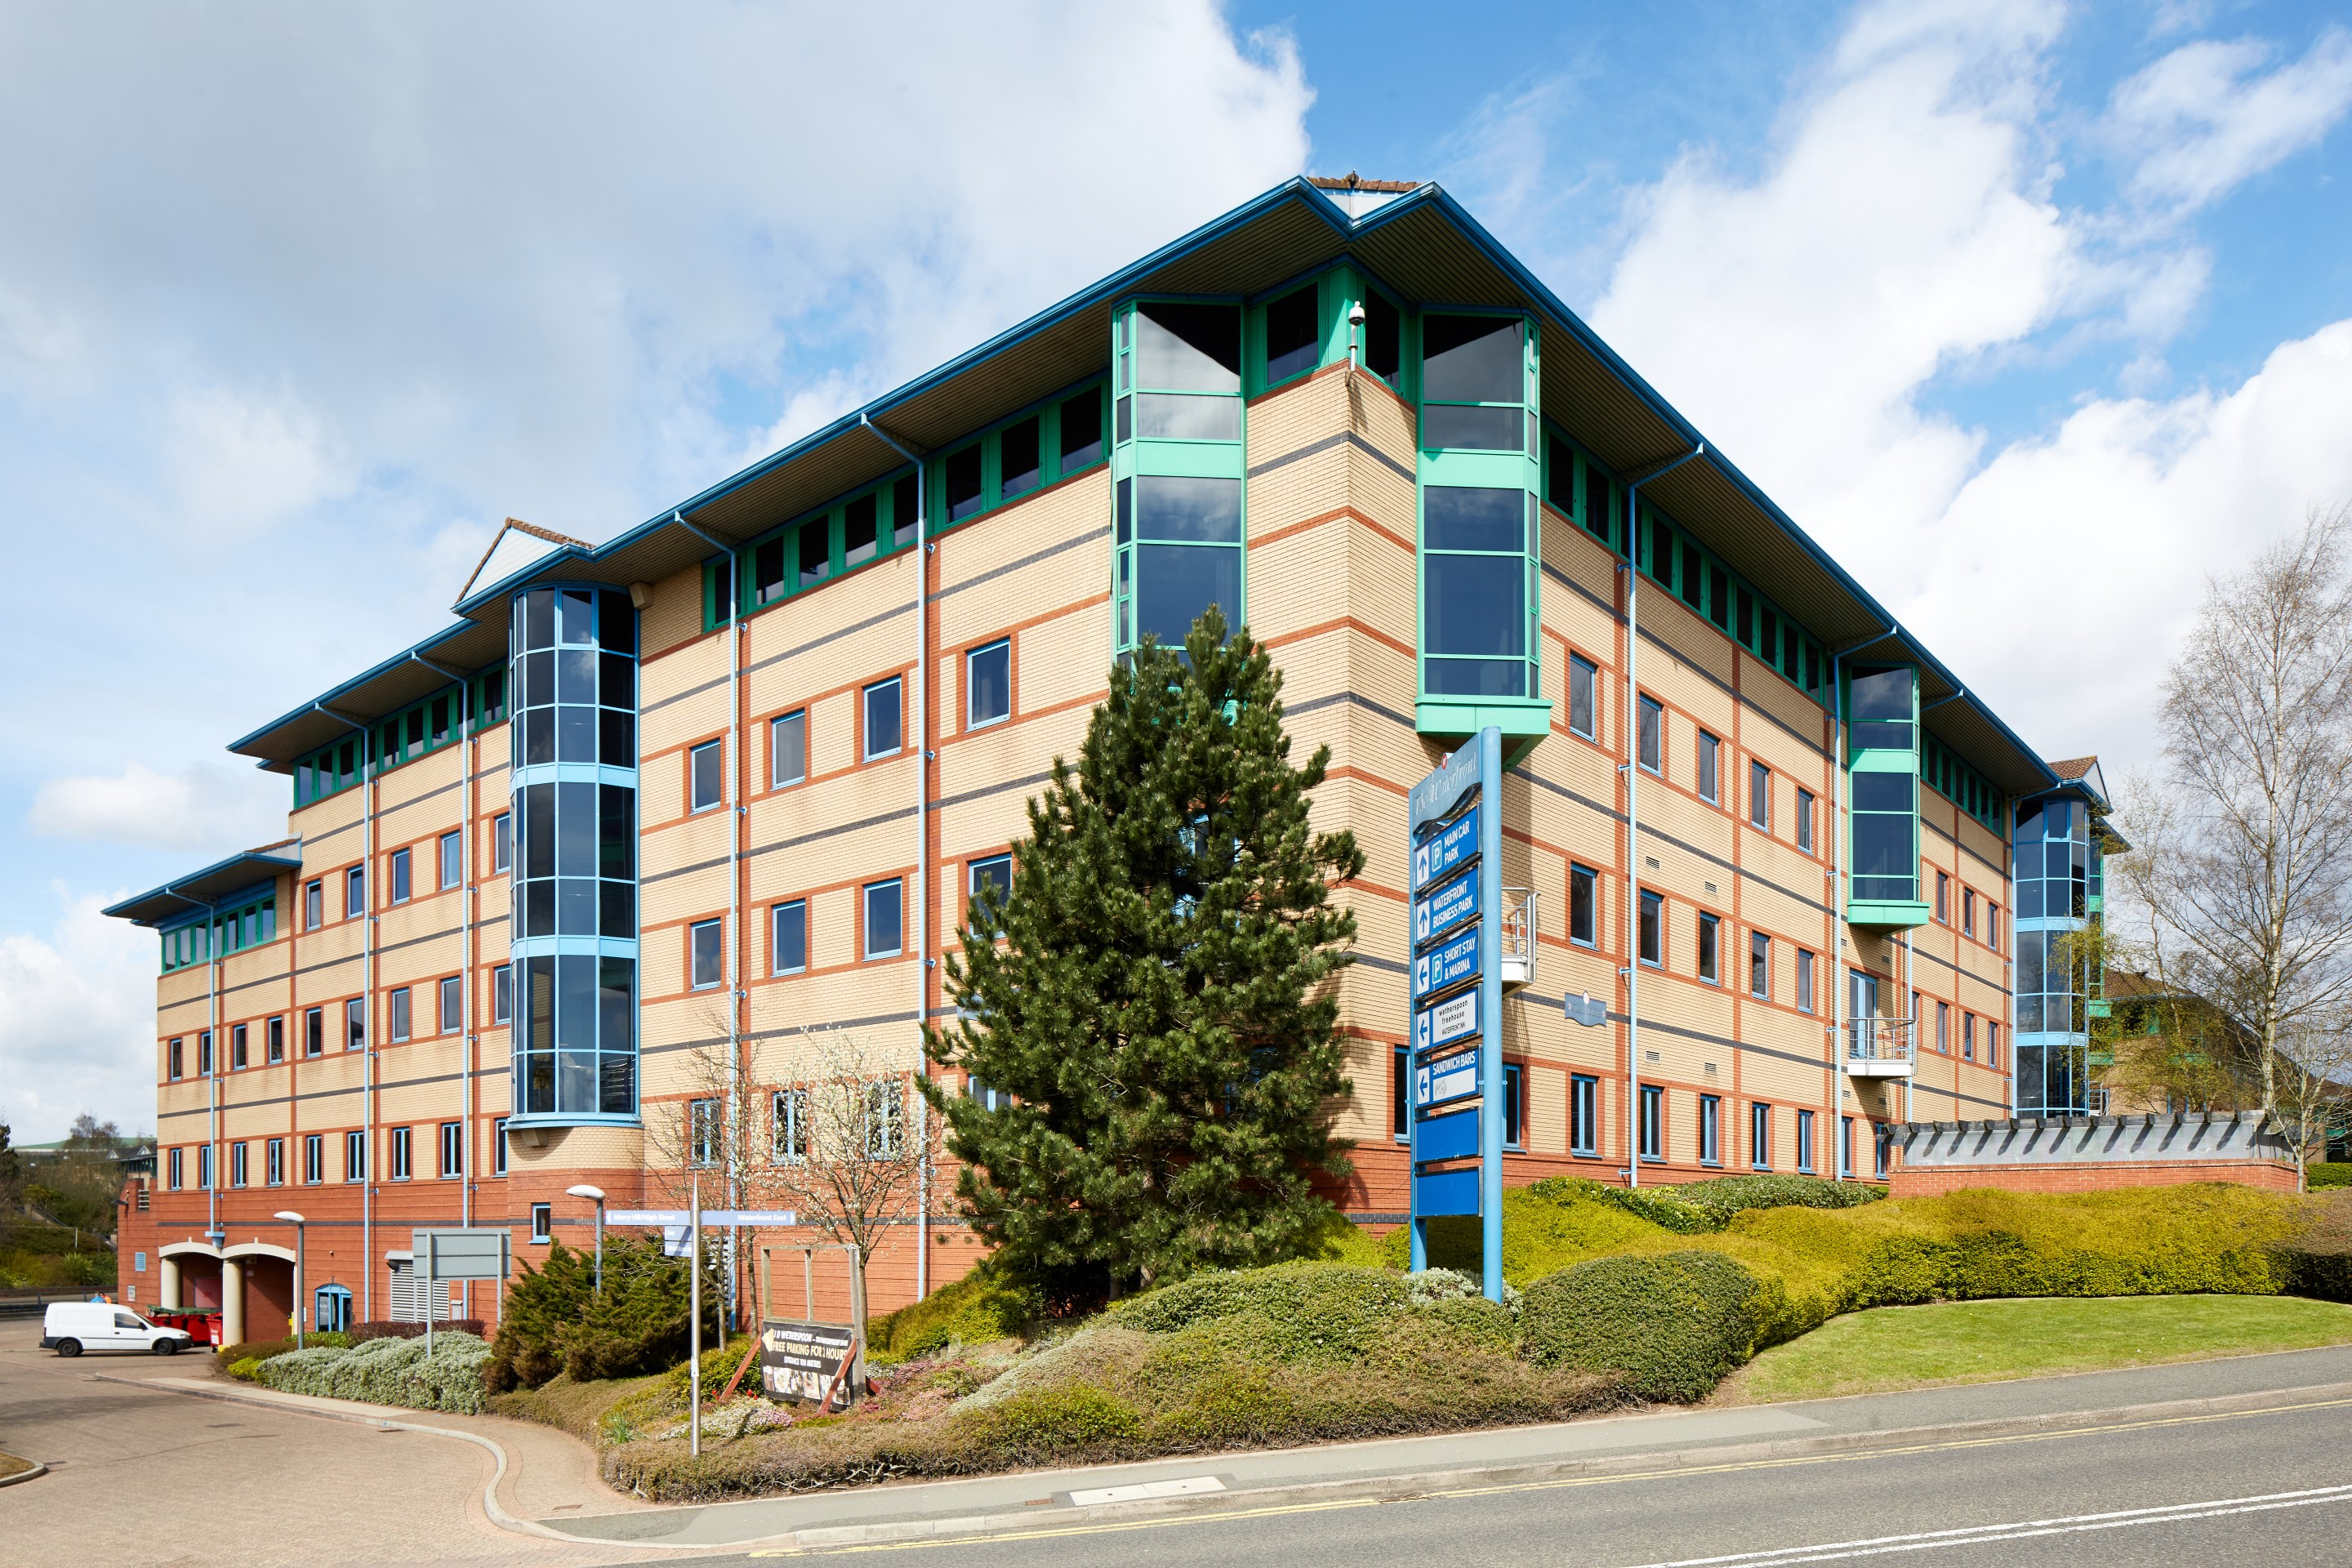 Access Properties Ltd  - Quay House - Level Street - The Waterfront. DY5 - Brierley Hill - Dudley